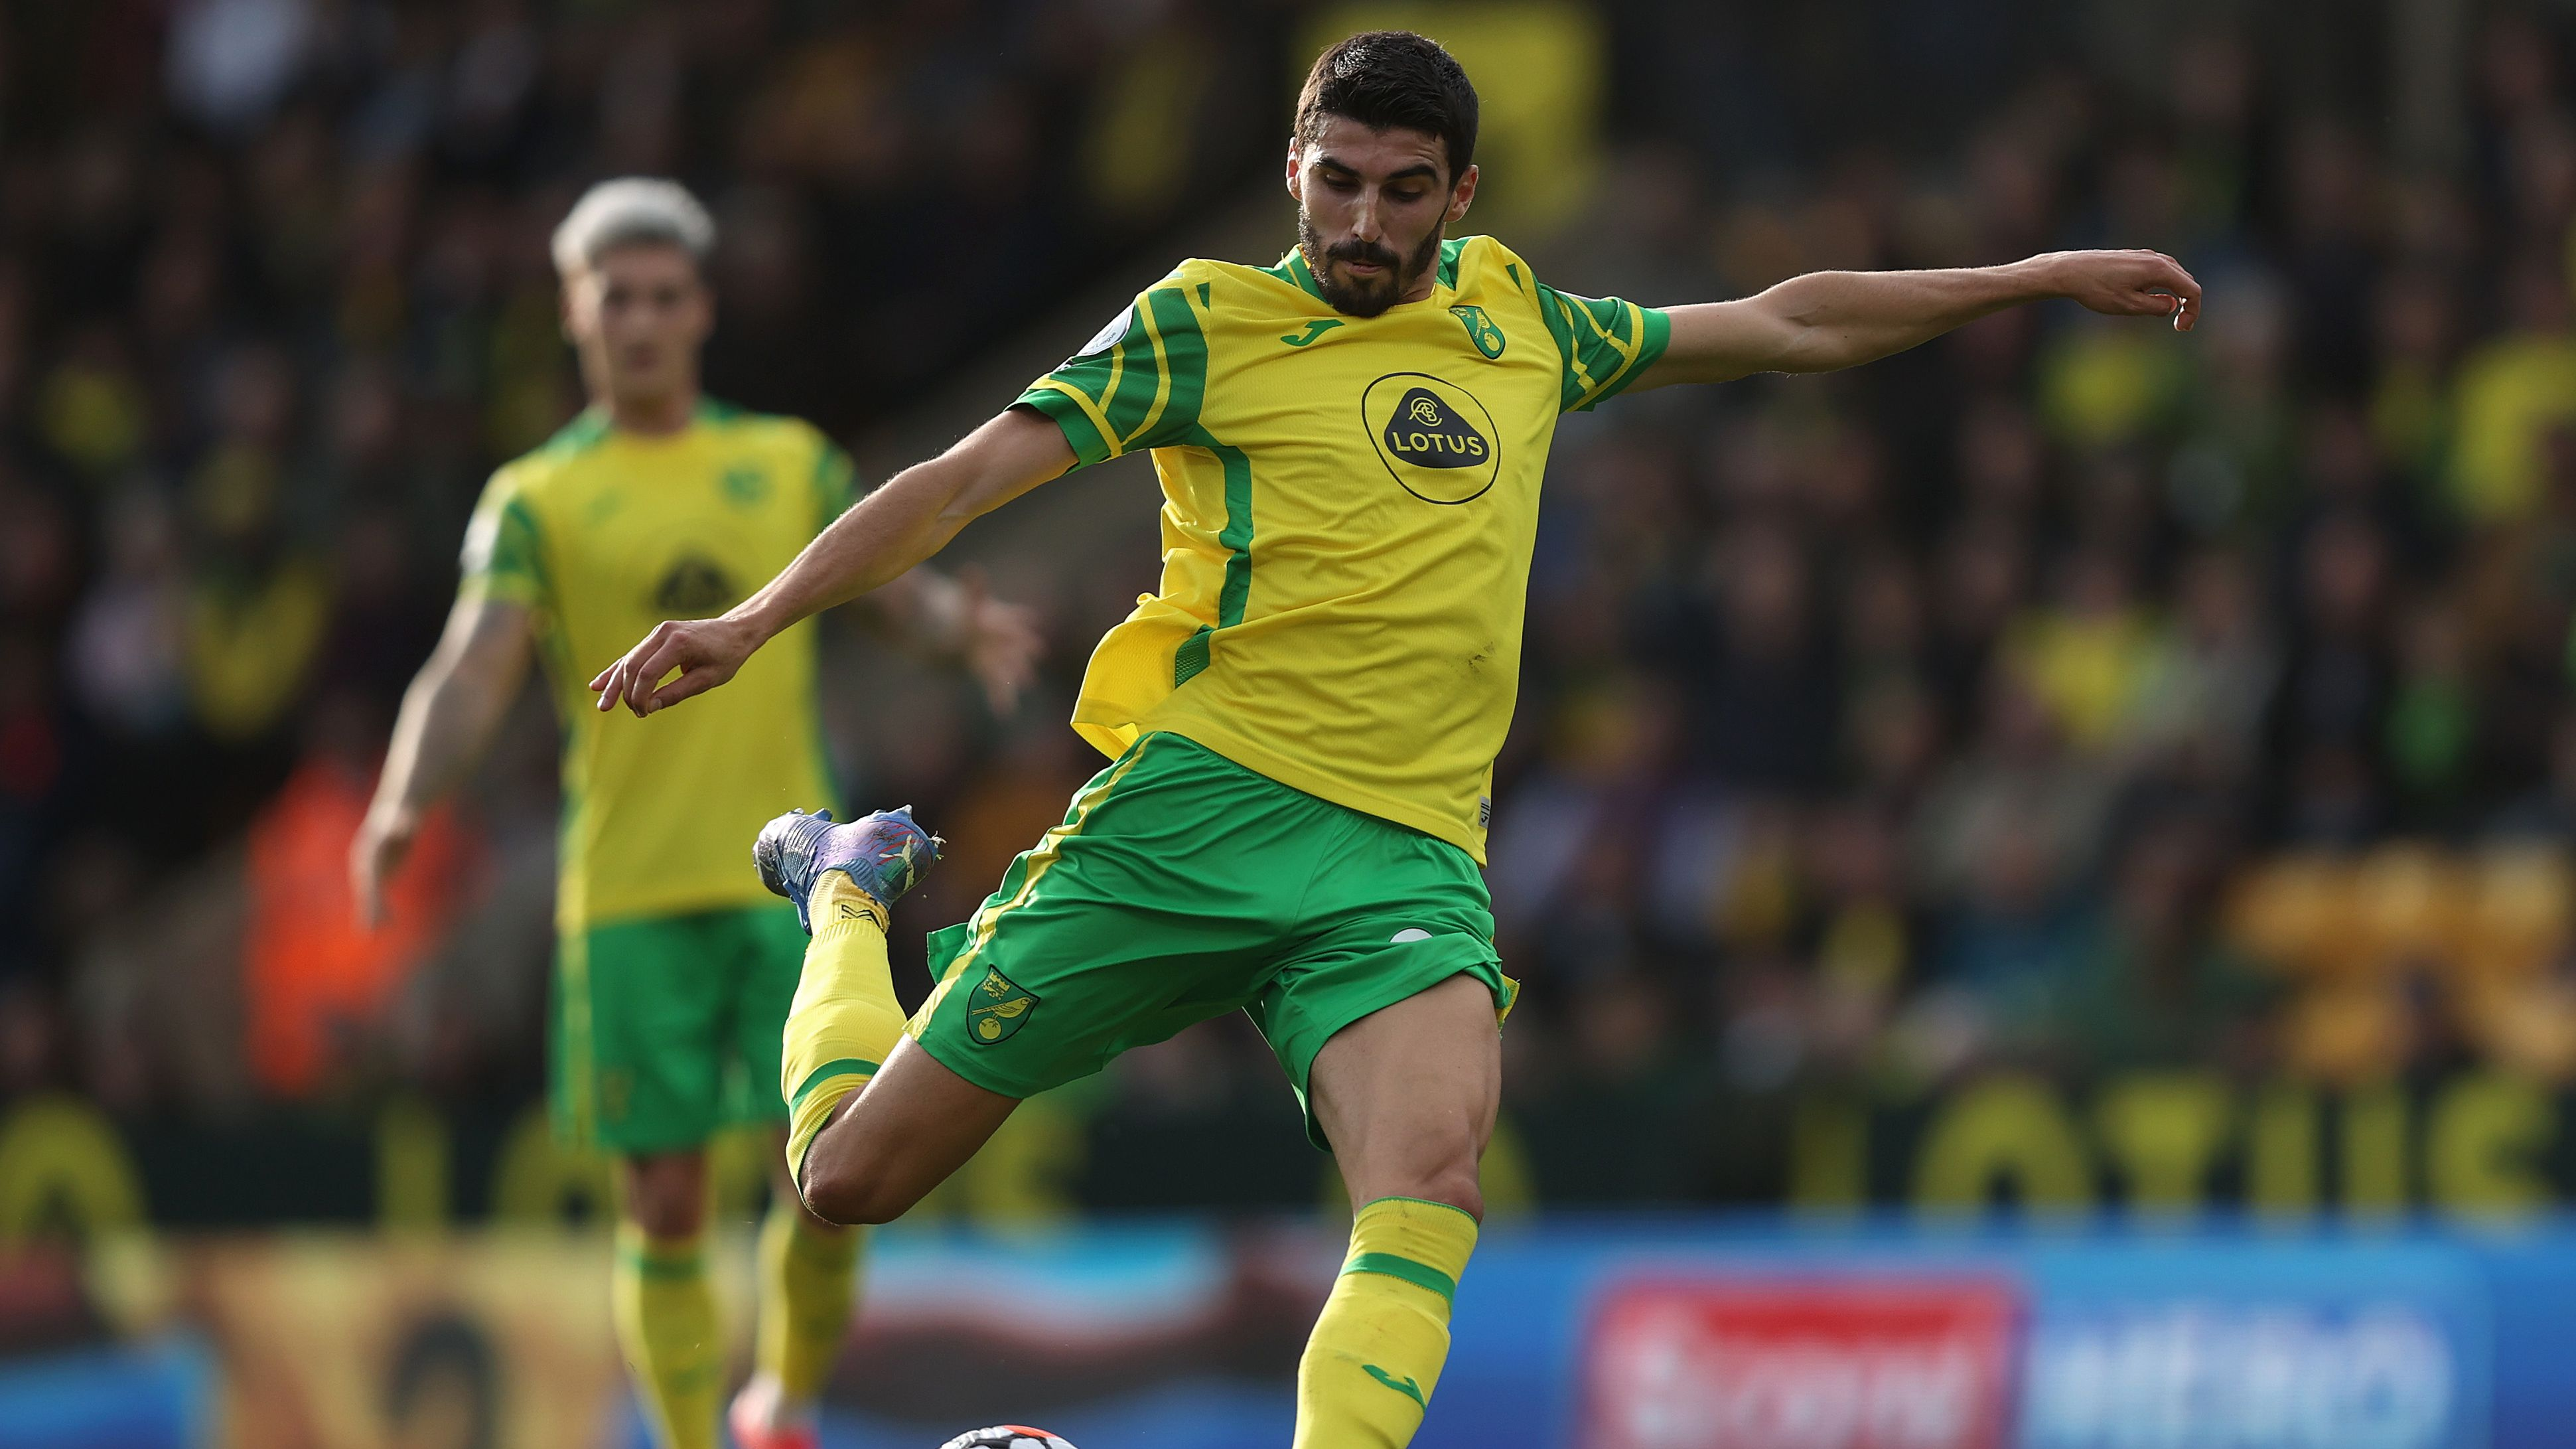 match-preview-chelsea-v-norwich-city-2021